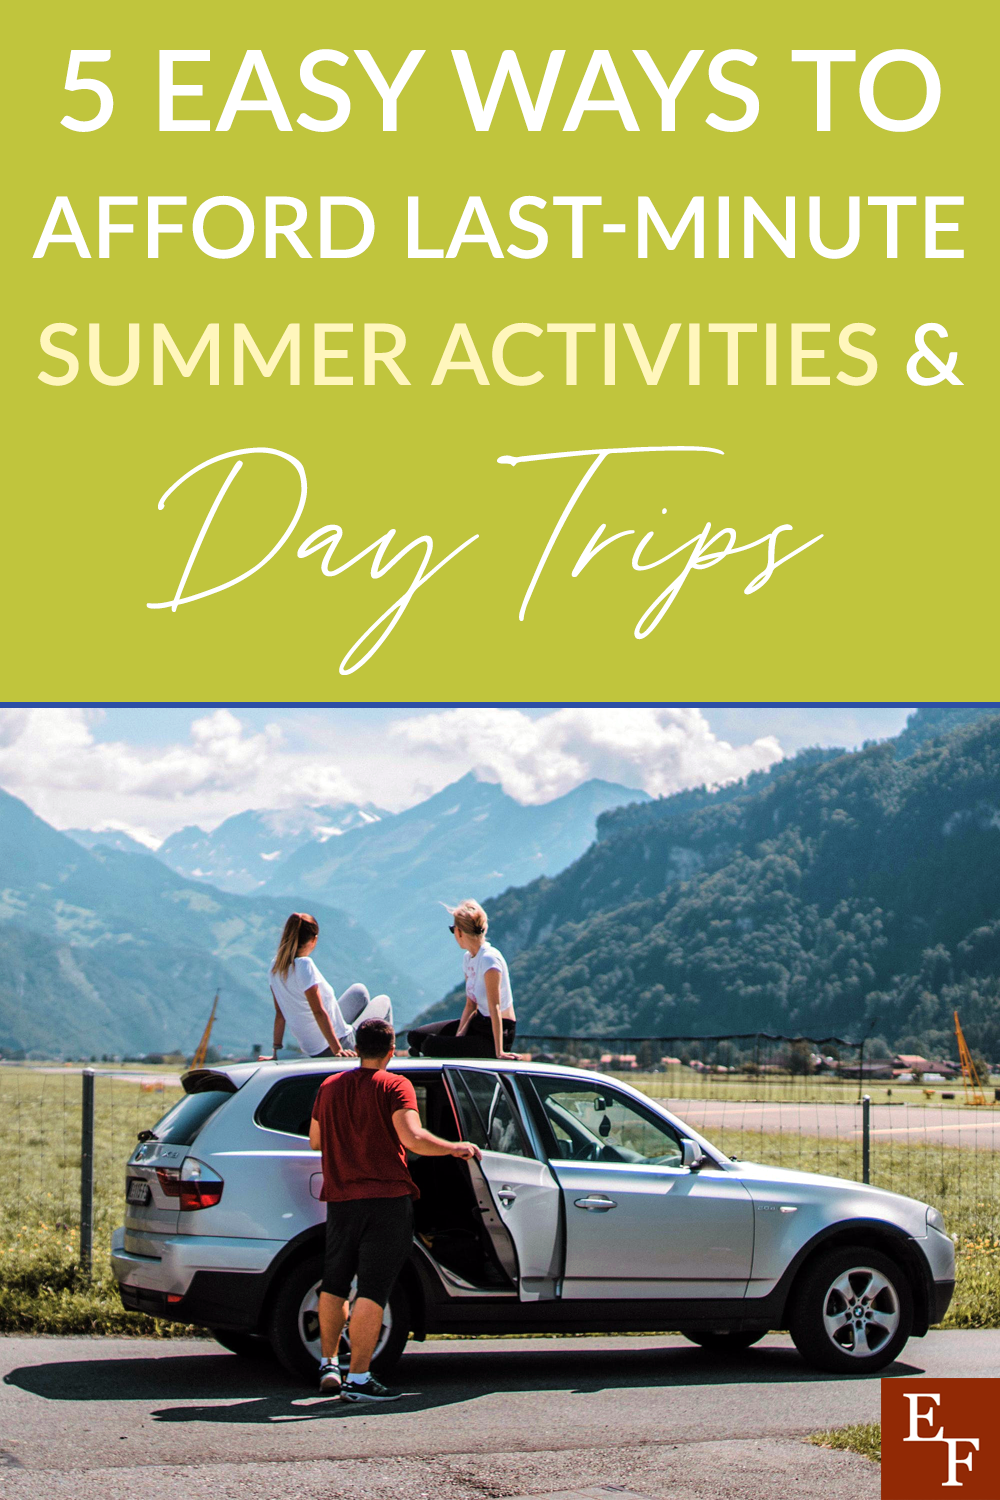 Having a plan in place to affording summer fun is the key to a great Summer. We've highlighted 5 easy ways to help make it happen.